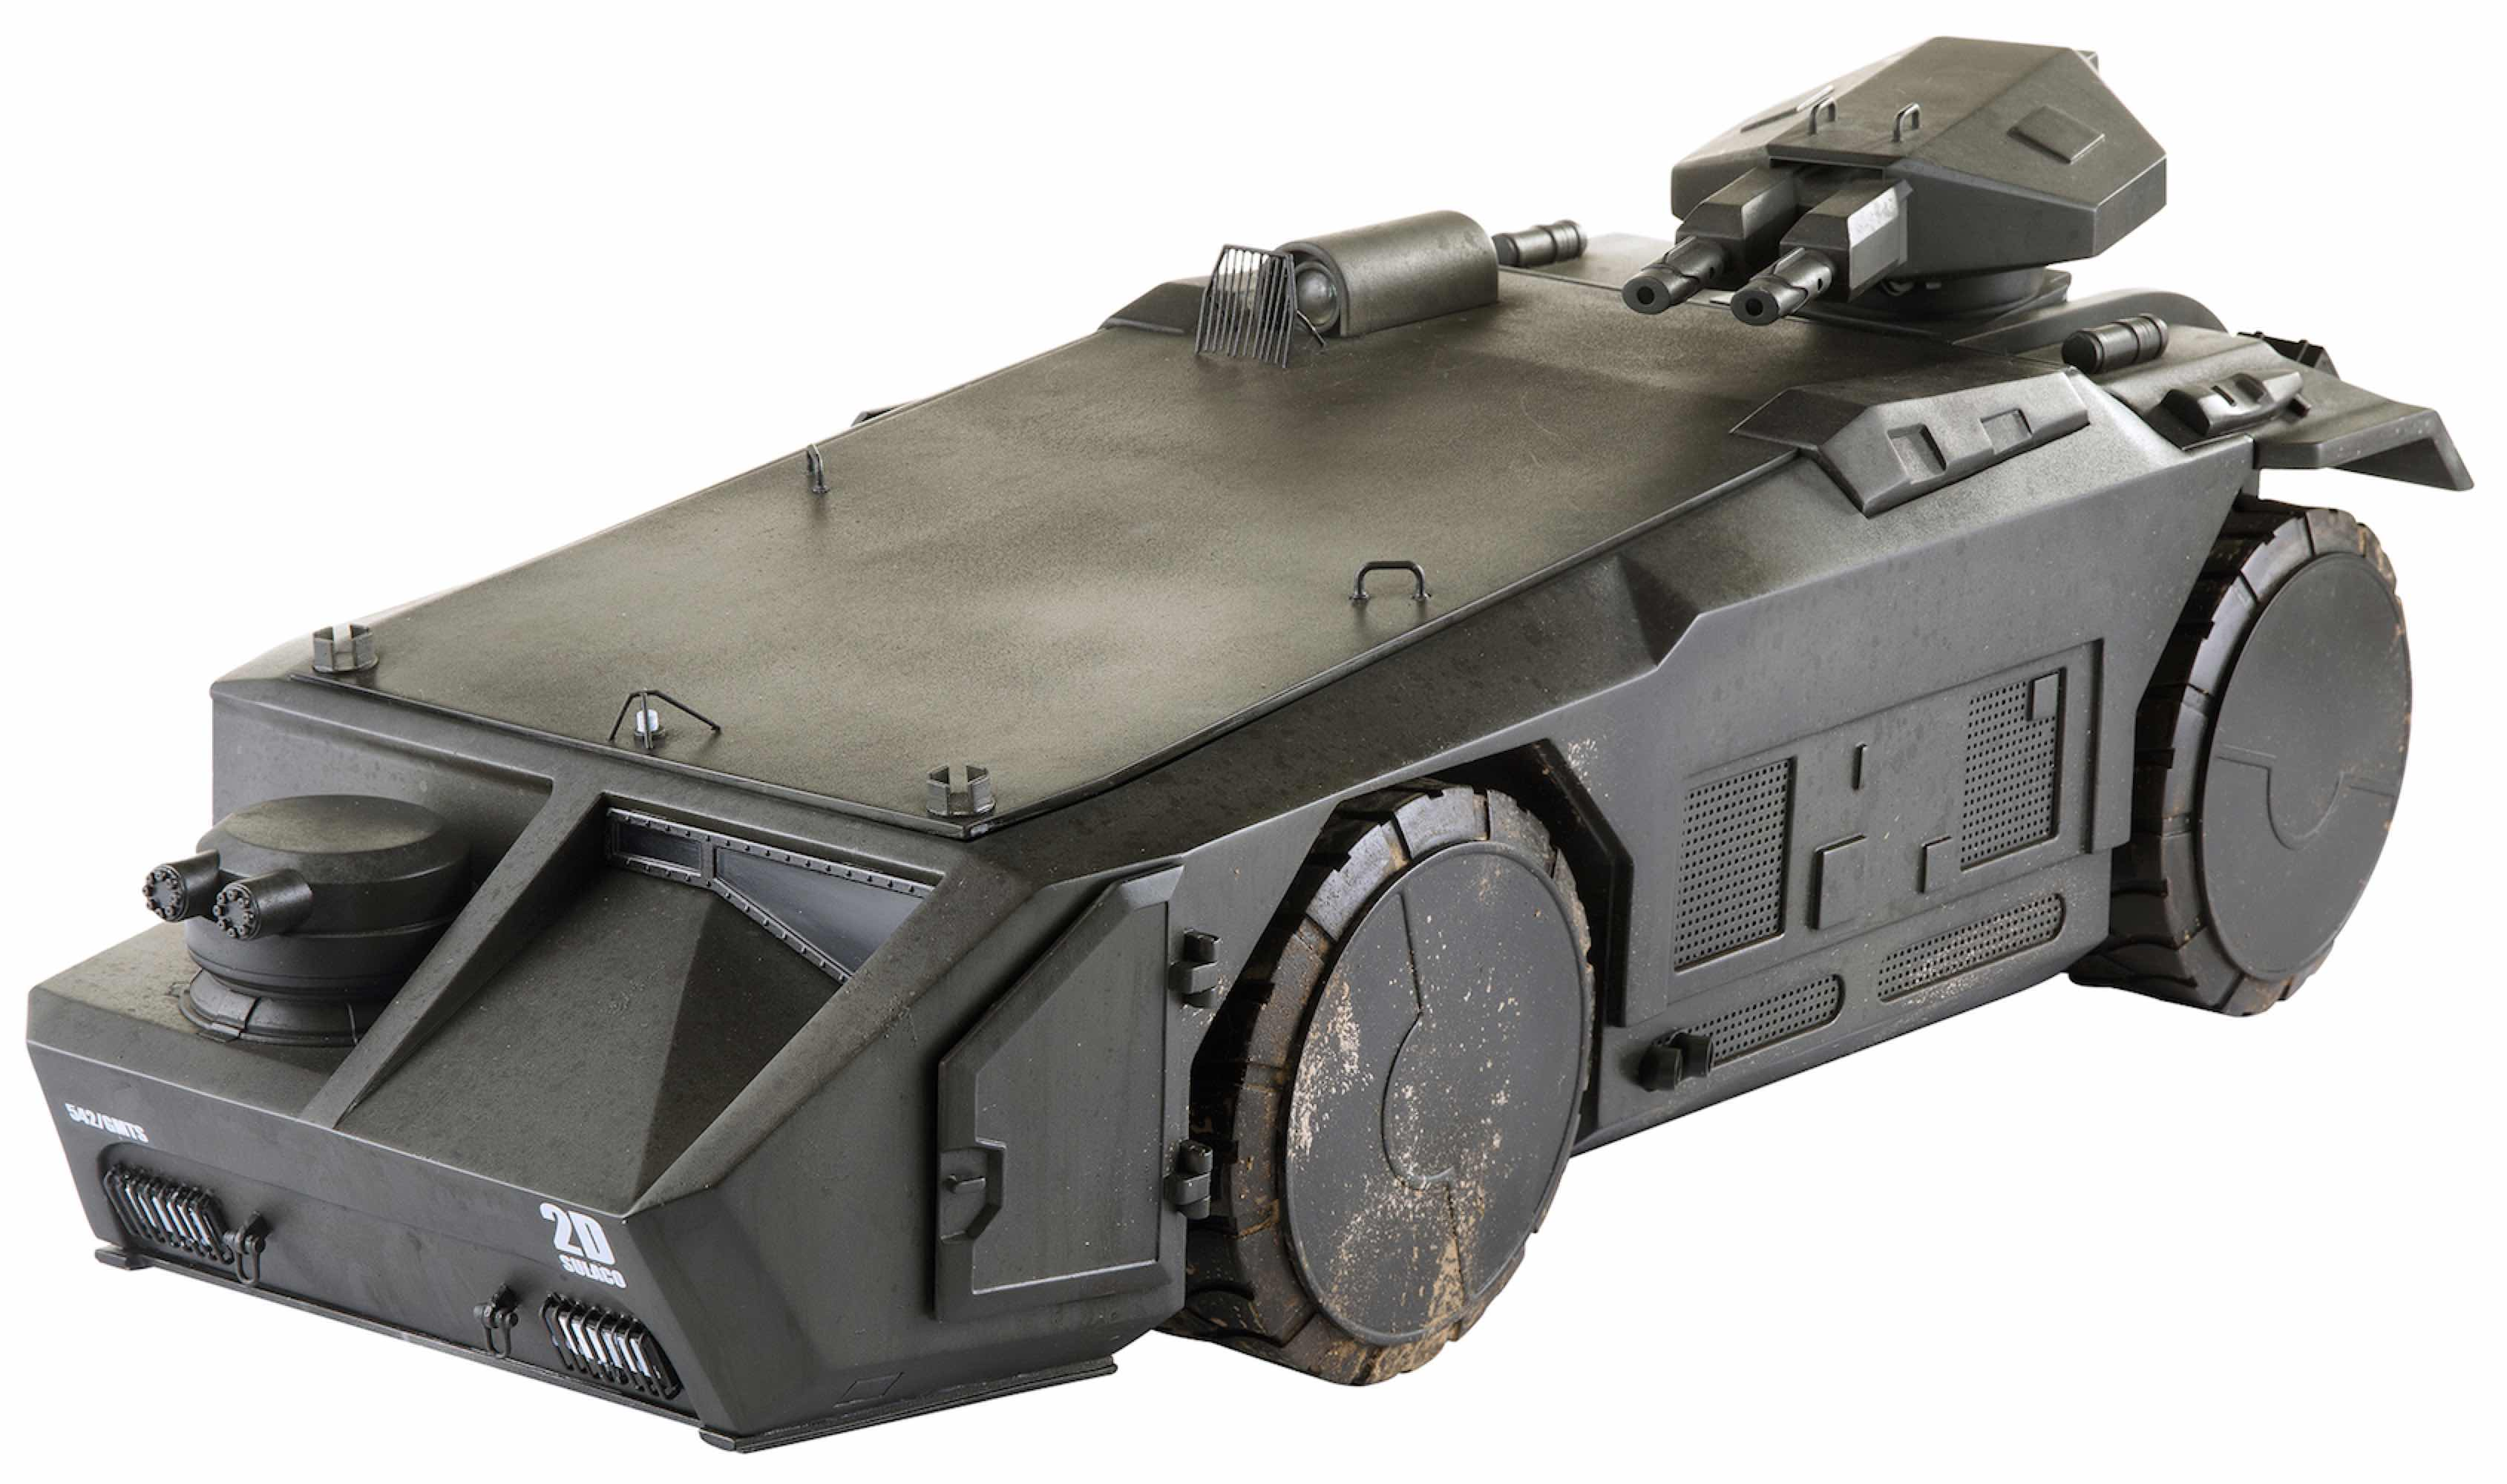 ARMORED PERSONNEL CARRIER FIGURA 1/18 SCALE PREVIEWS EXCLUSIVE ALIENS COLONIAL MARINES